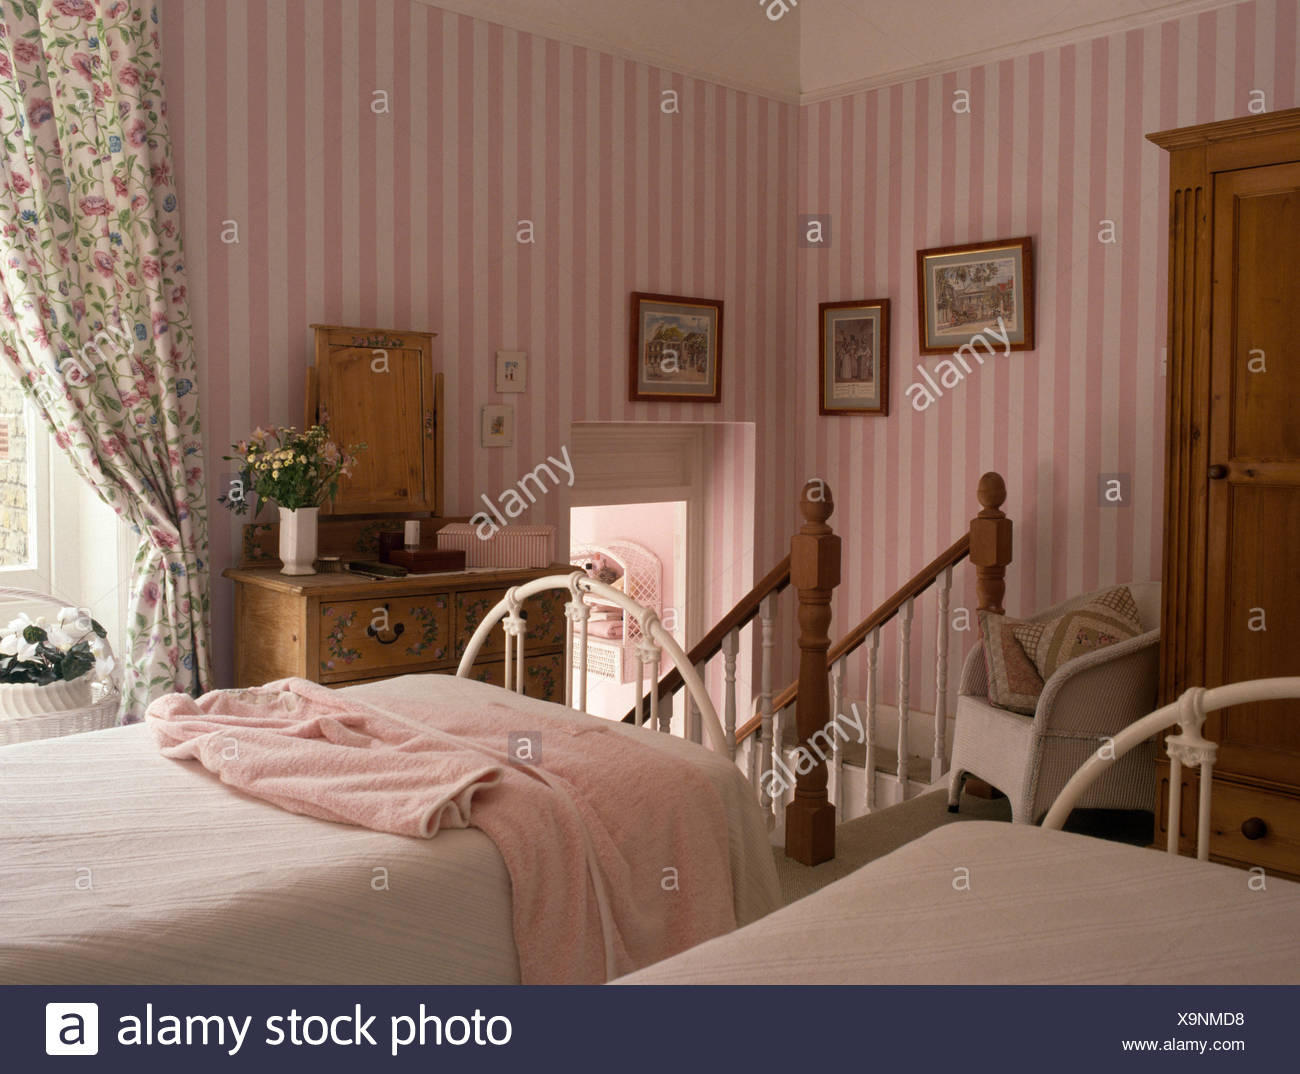 Pink striped wallpaper in country bedroom with white wrought ...